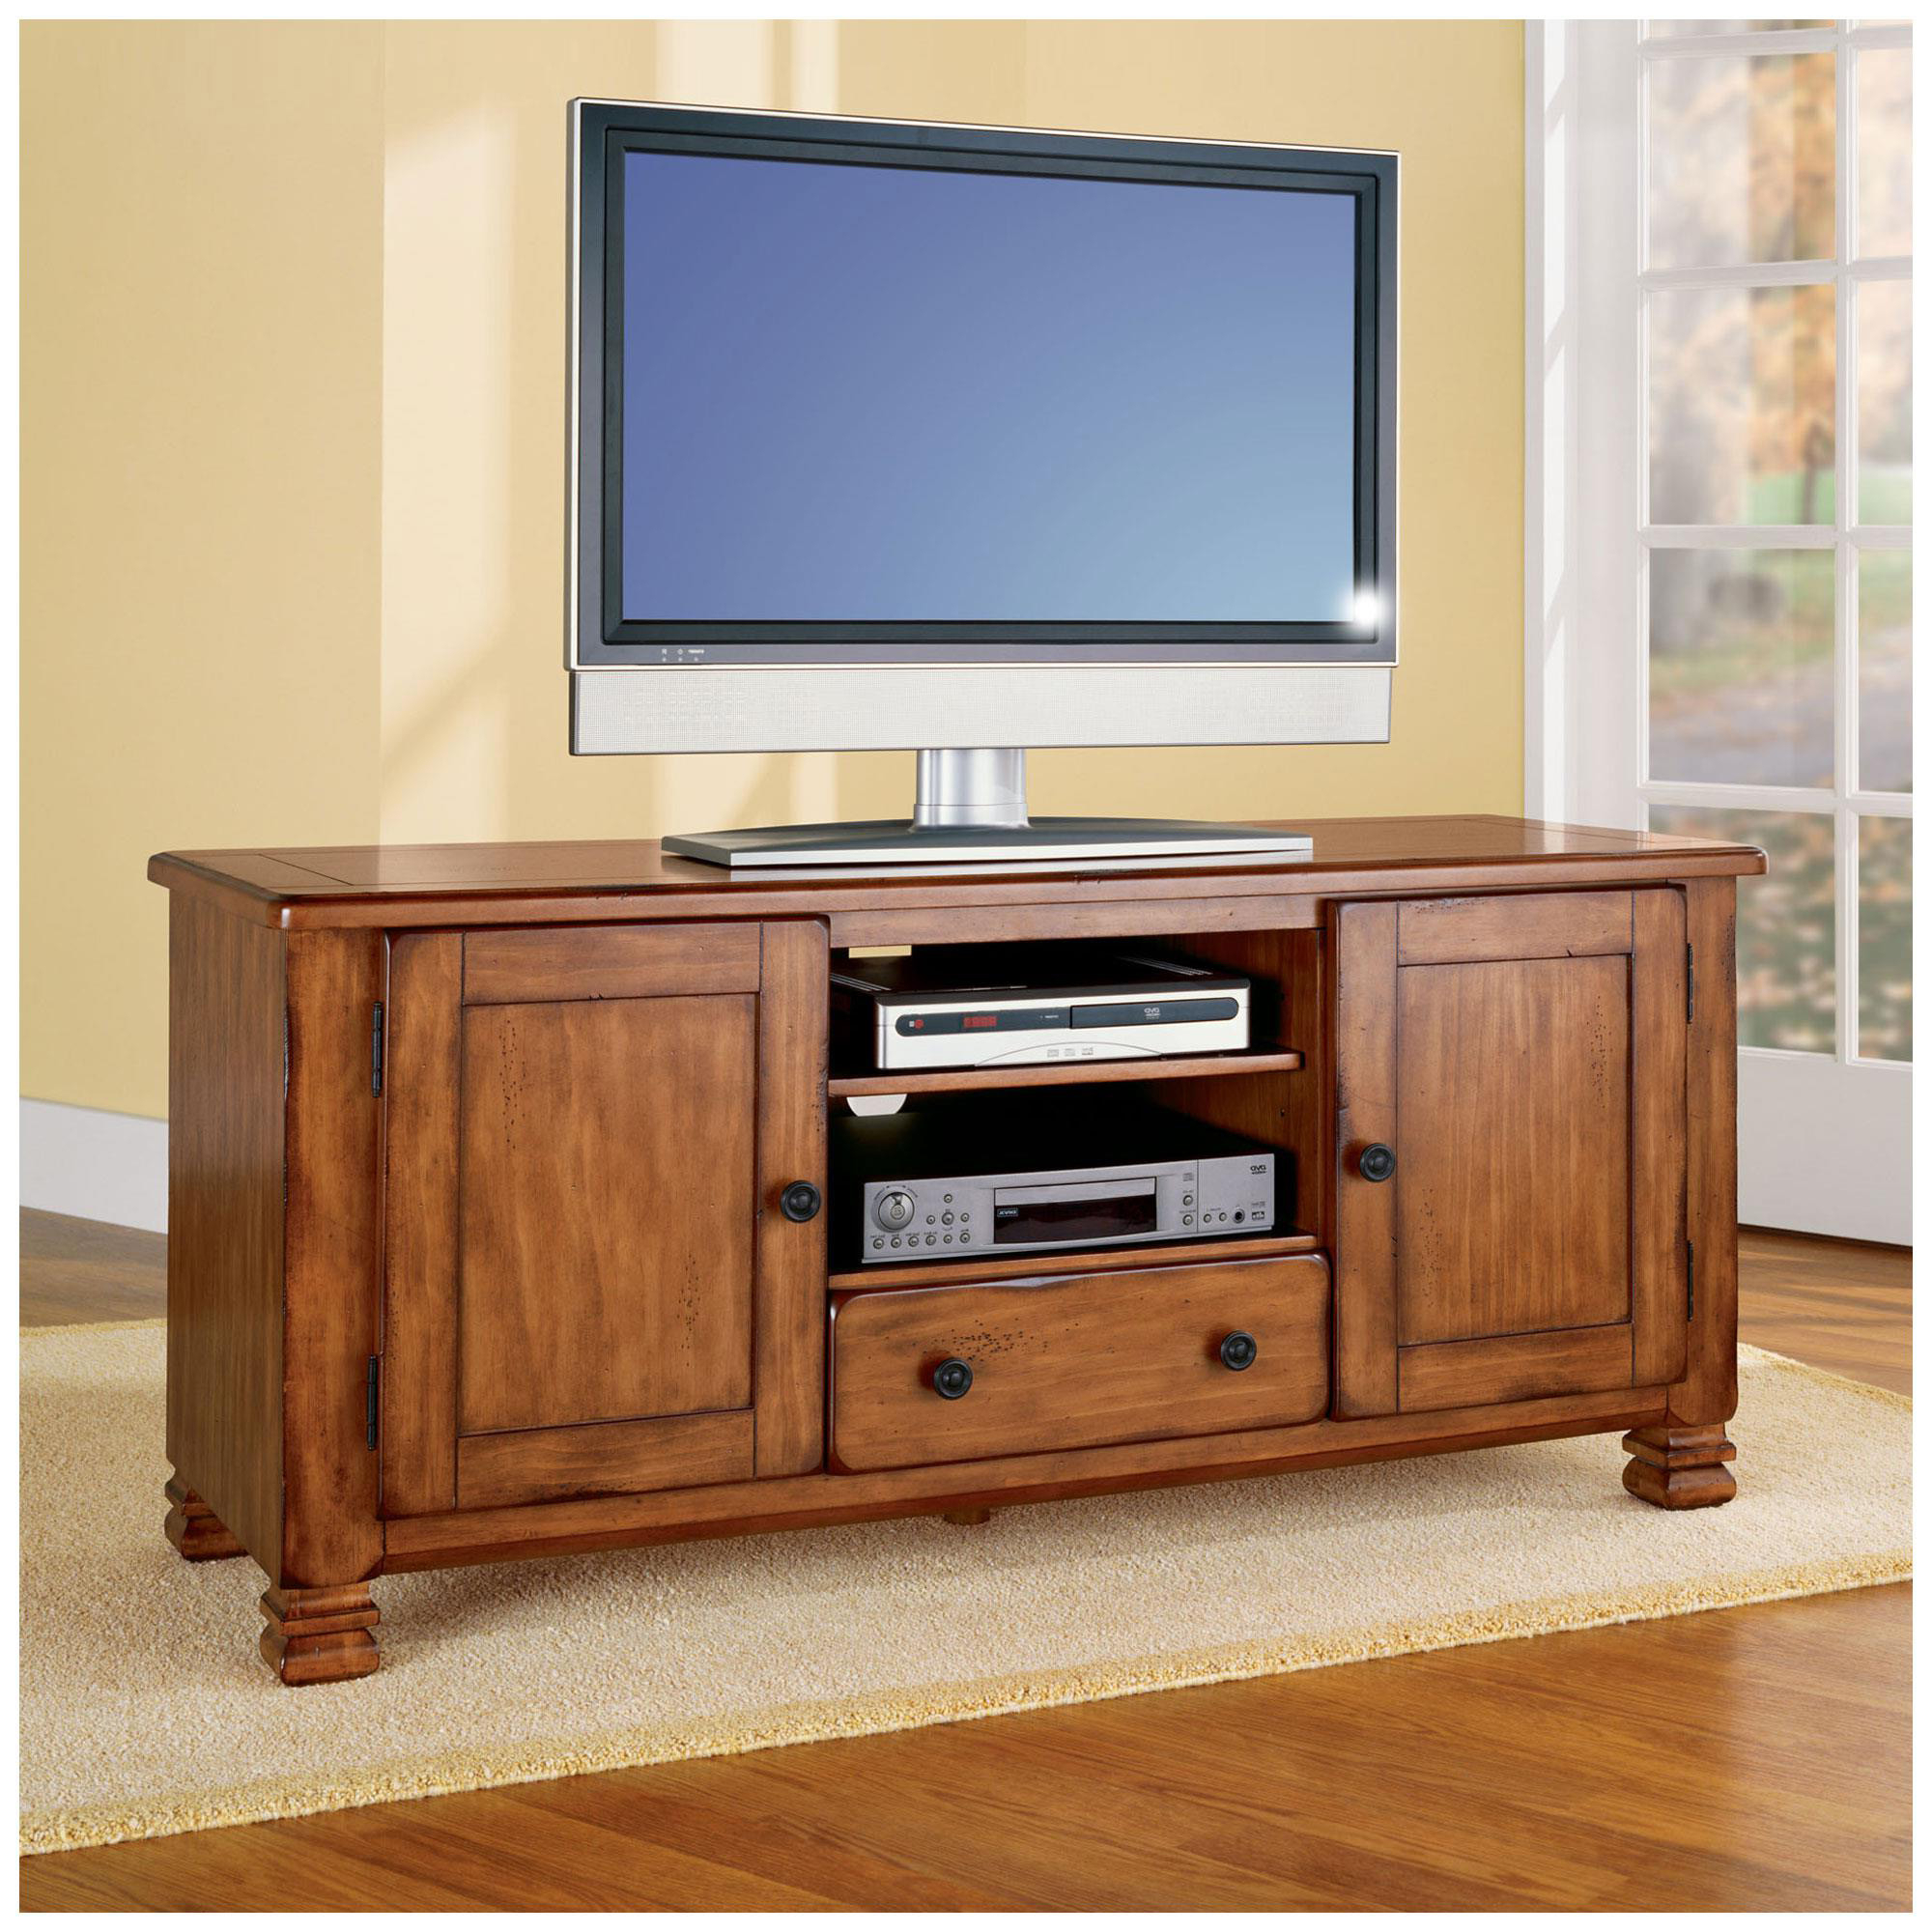 Oak Tv Cabinets Throughout Most Popular Oak Tv Stand Walmart Solid Wood Stands For Flat Screens Light (View 10 of 20)